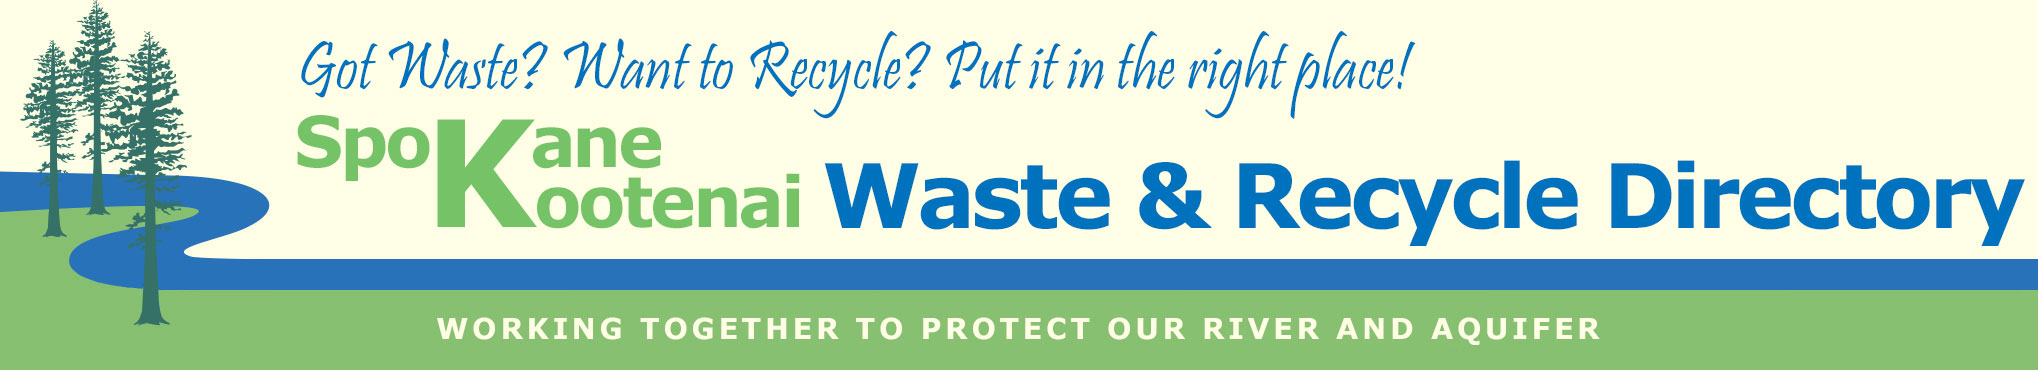 Spokane Kootenai Waste and Recycle Directory